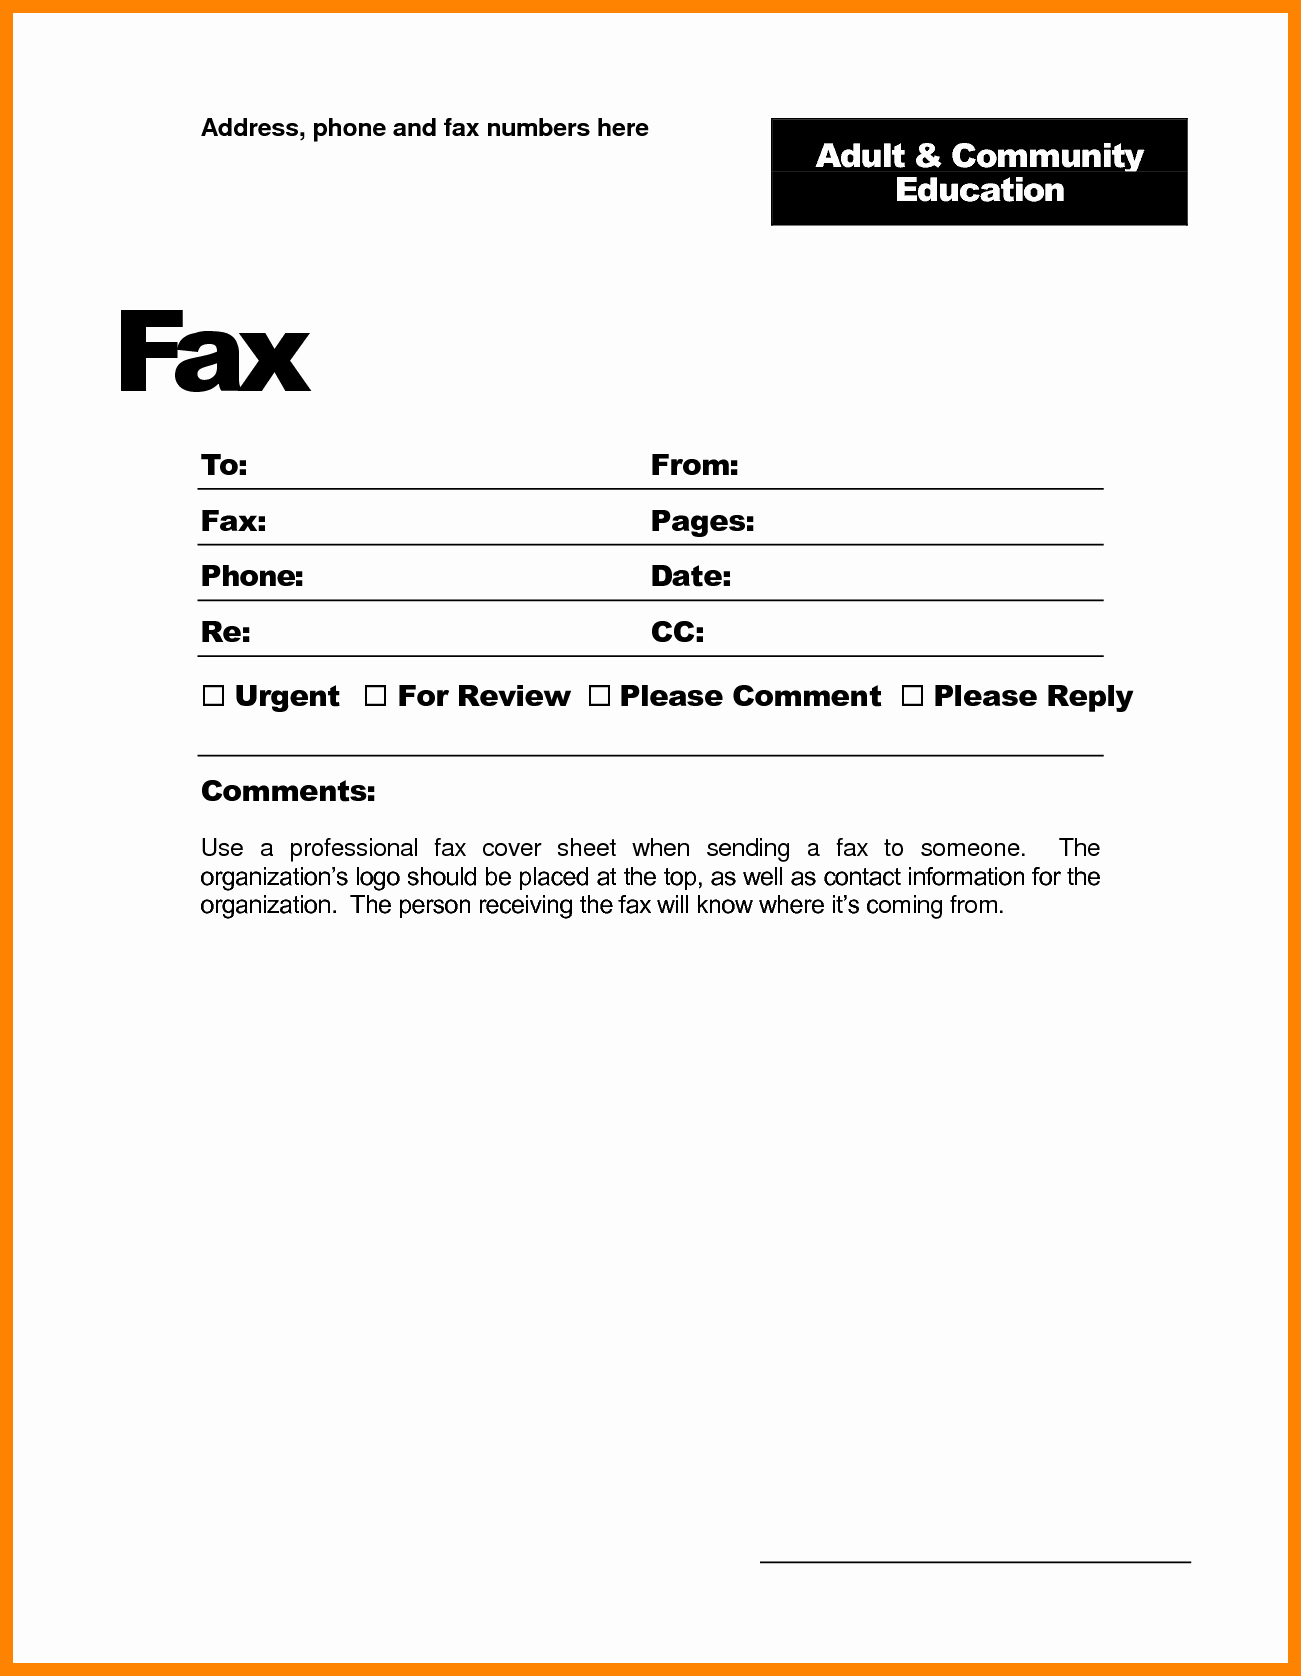 Sample Fax Cover Sheet Word Lovely Fax Cover Template Word Portablegasgrillweber